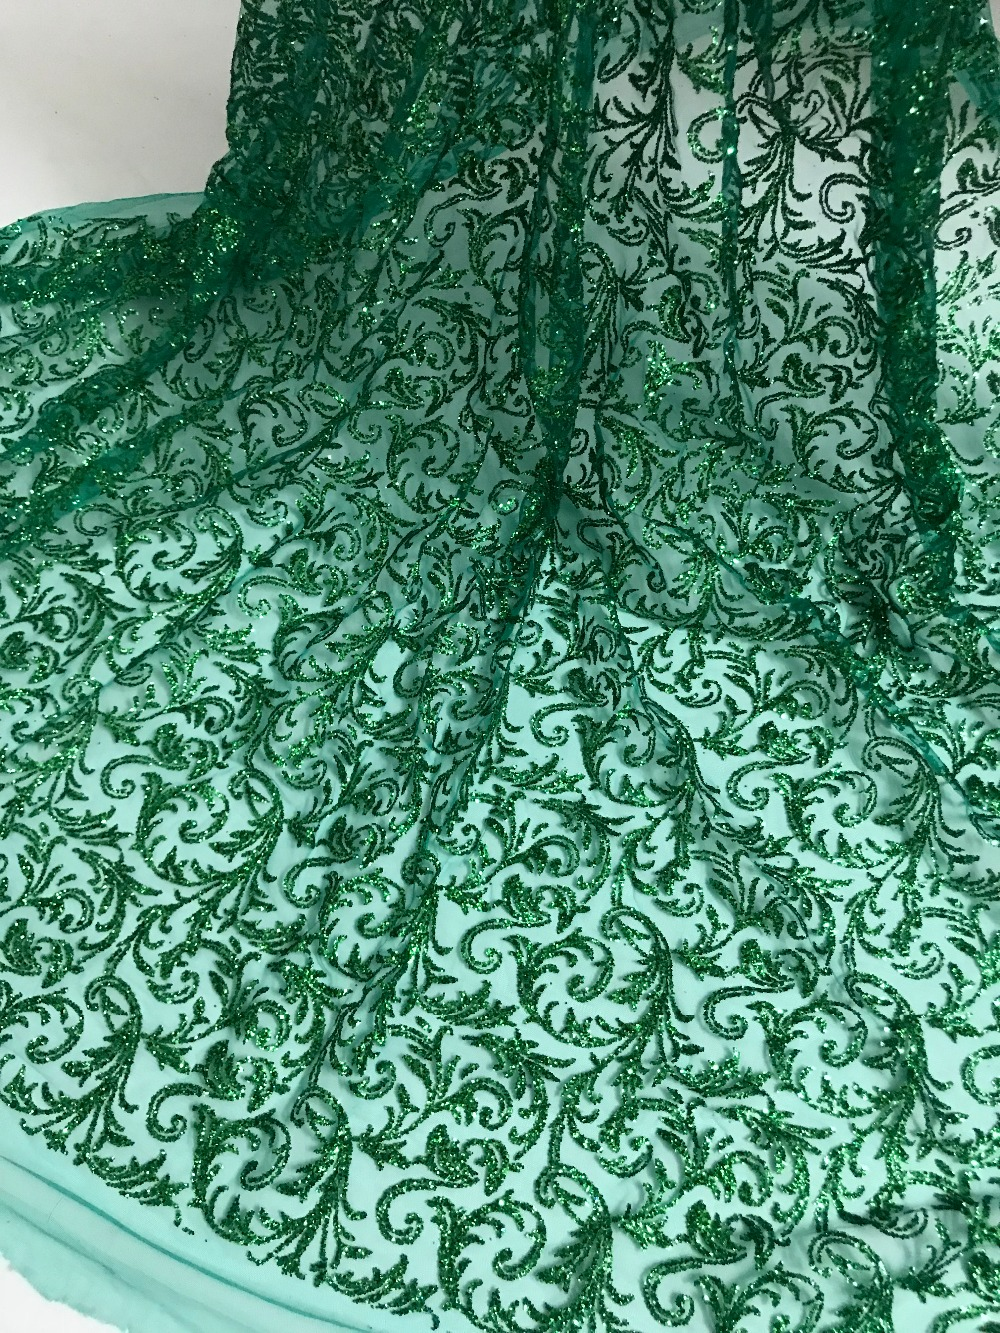 5yard lot african glitter lace fabric SYJ 91019 embroidered tulle lace with glued glitter for party